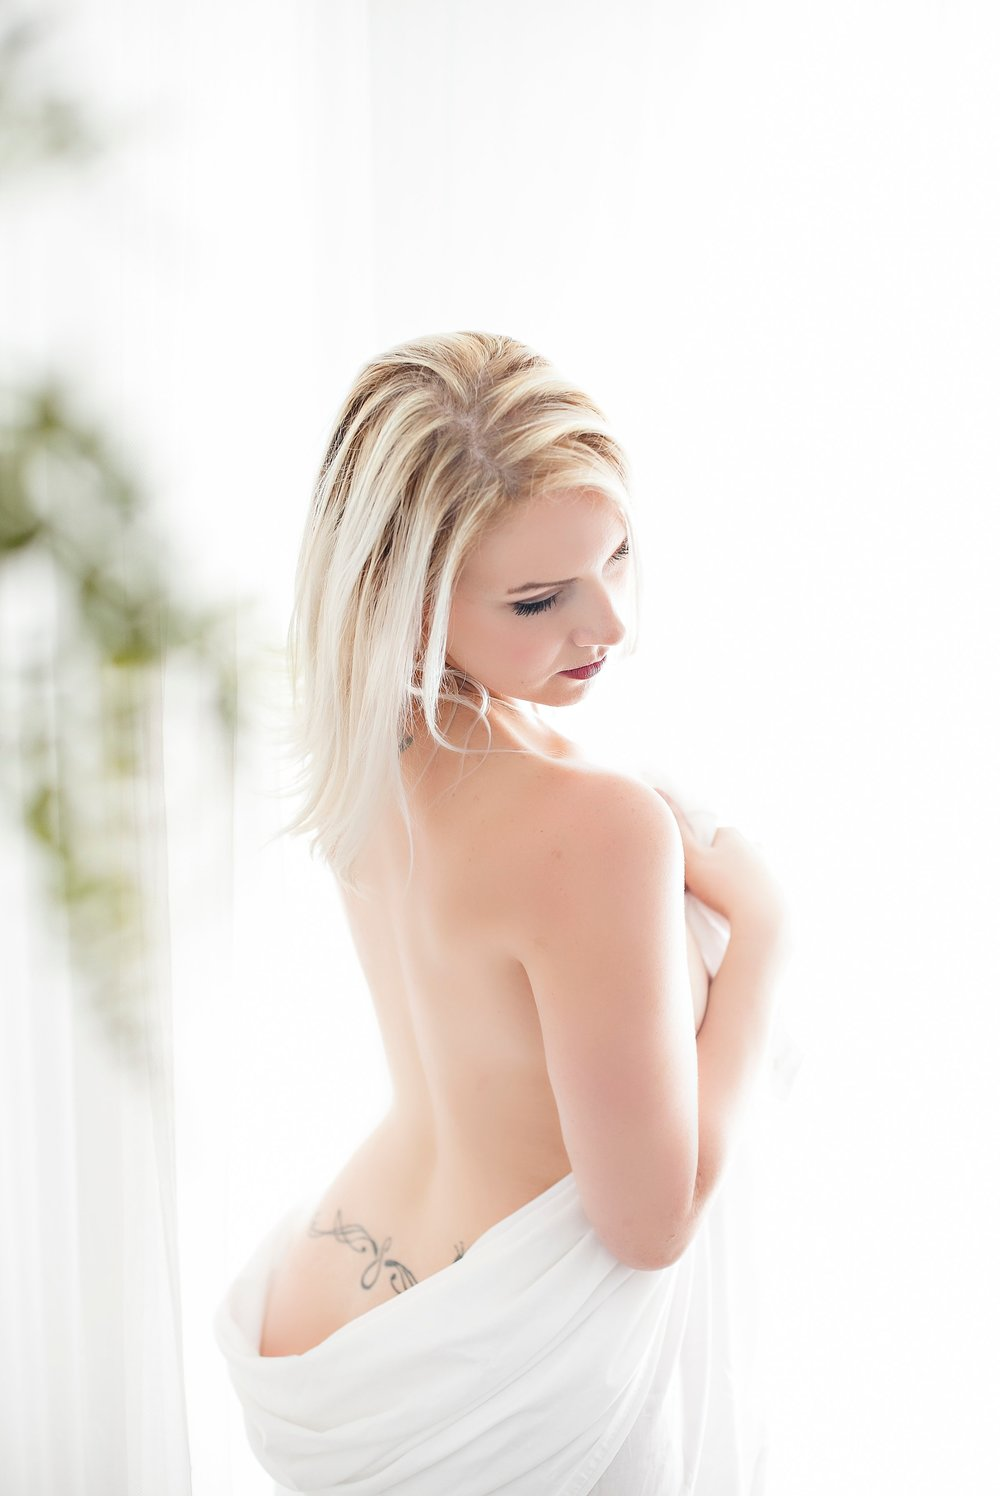 Boudoir-Collective-Fine-Art-Boudoir-Blog-and-Magazine-De-La-Vie-Botanical-Boudoir-6.jpg